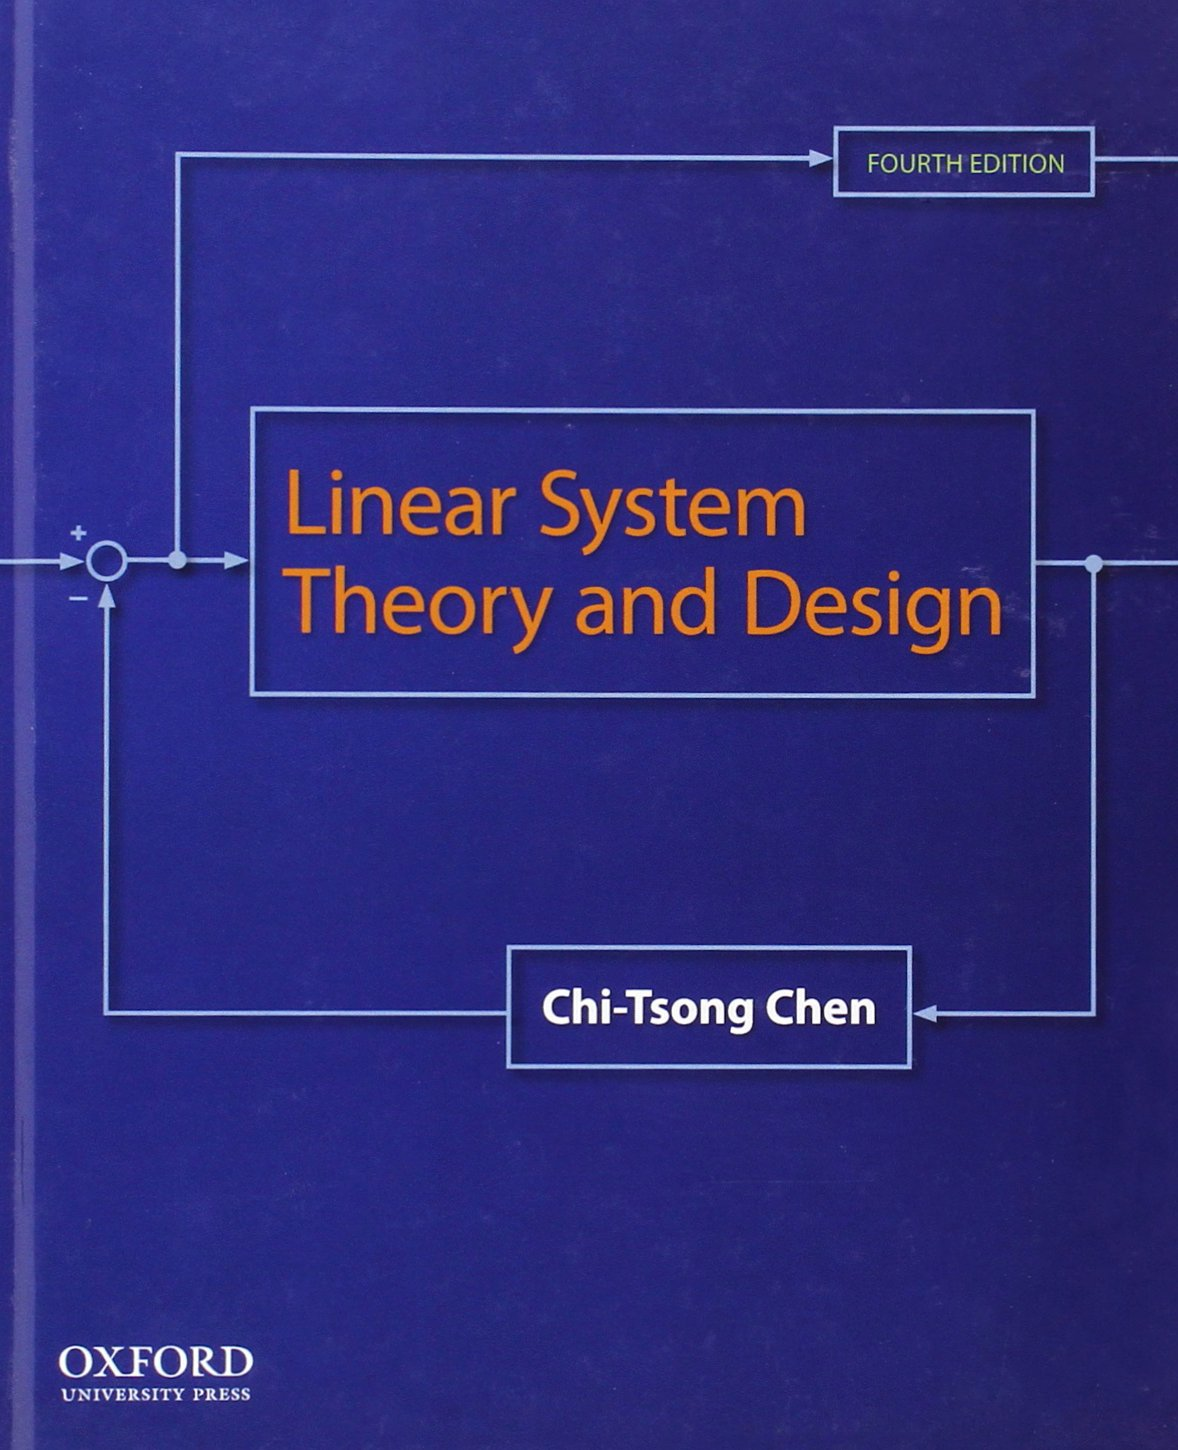 Linear System Theory and Design Oxford Series in Electrical and Computer Engineering: Amazon.es: Chen, Chi-Tsong: Libros en idiomas extranjeros